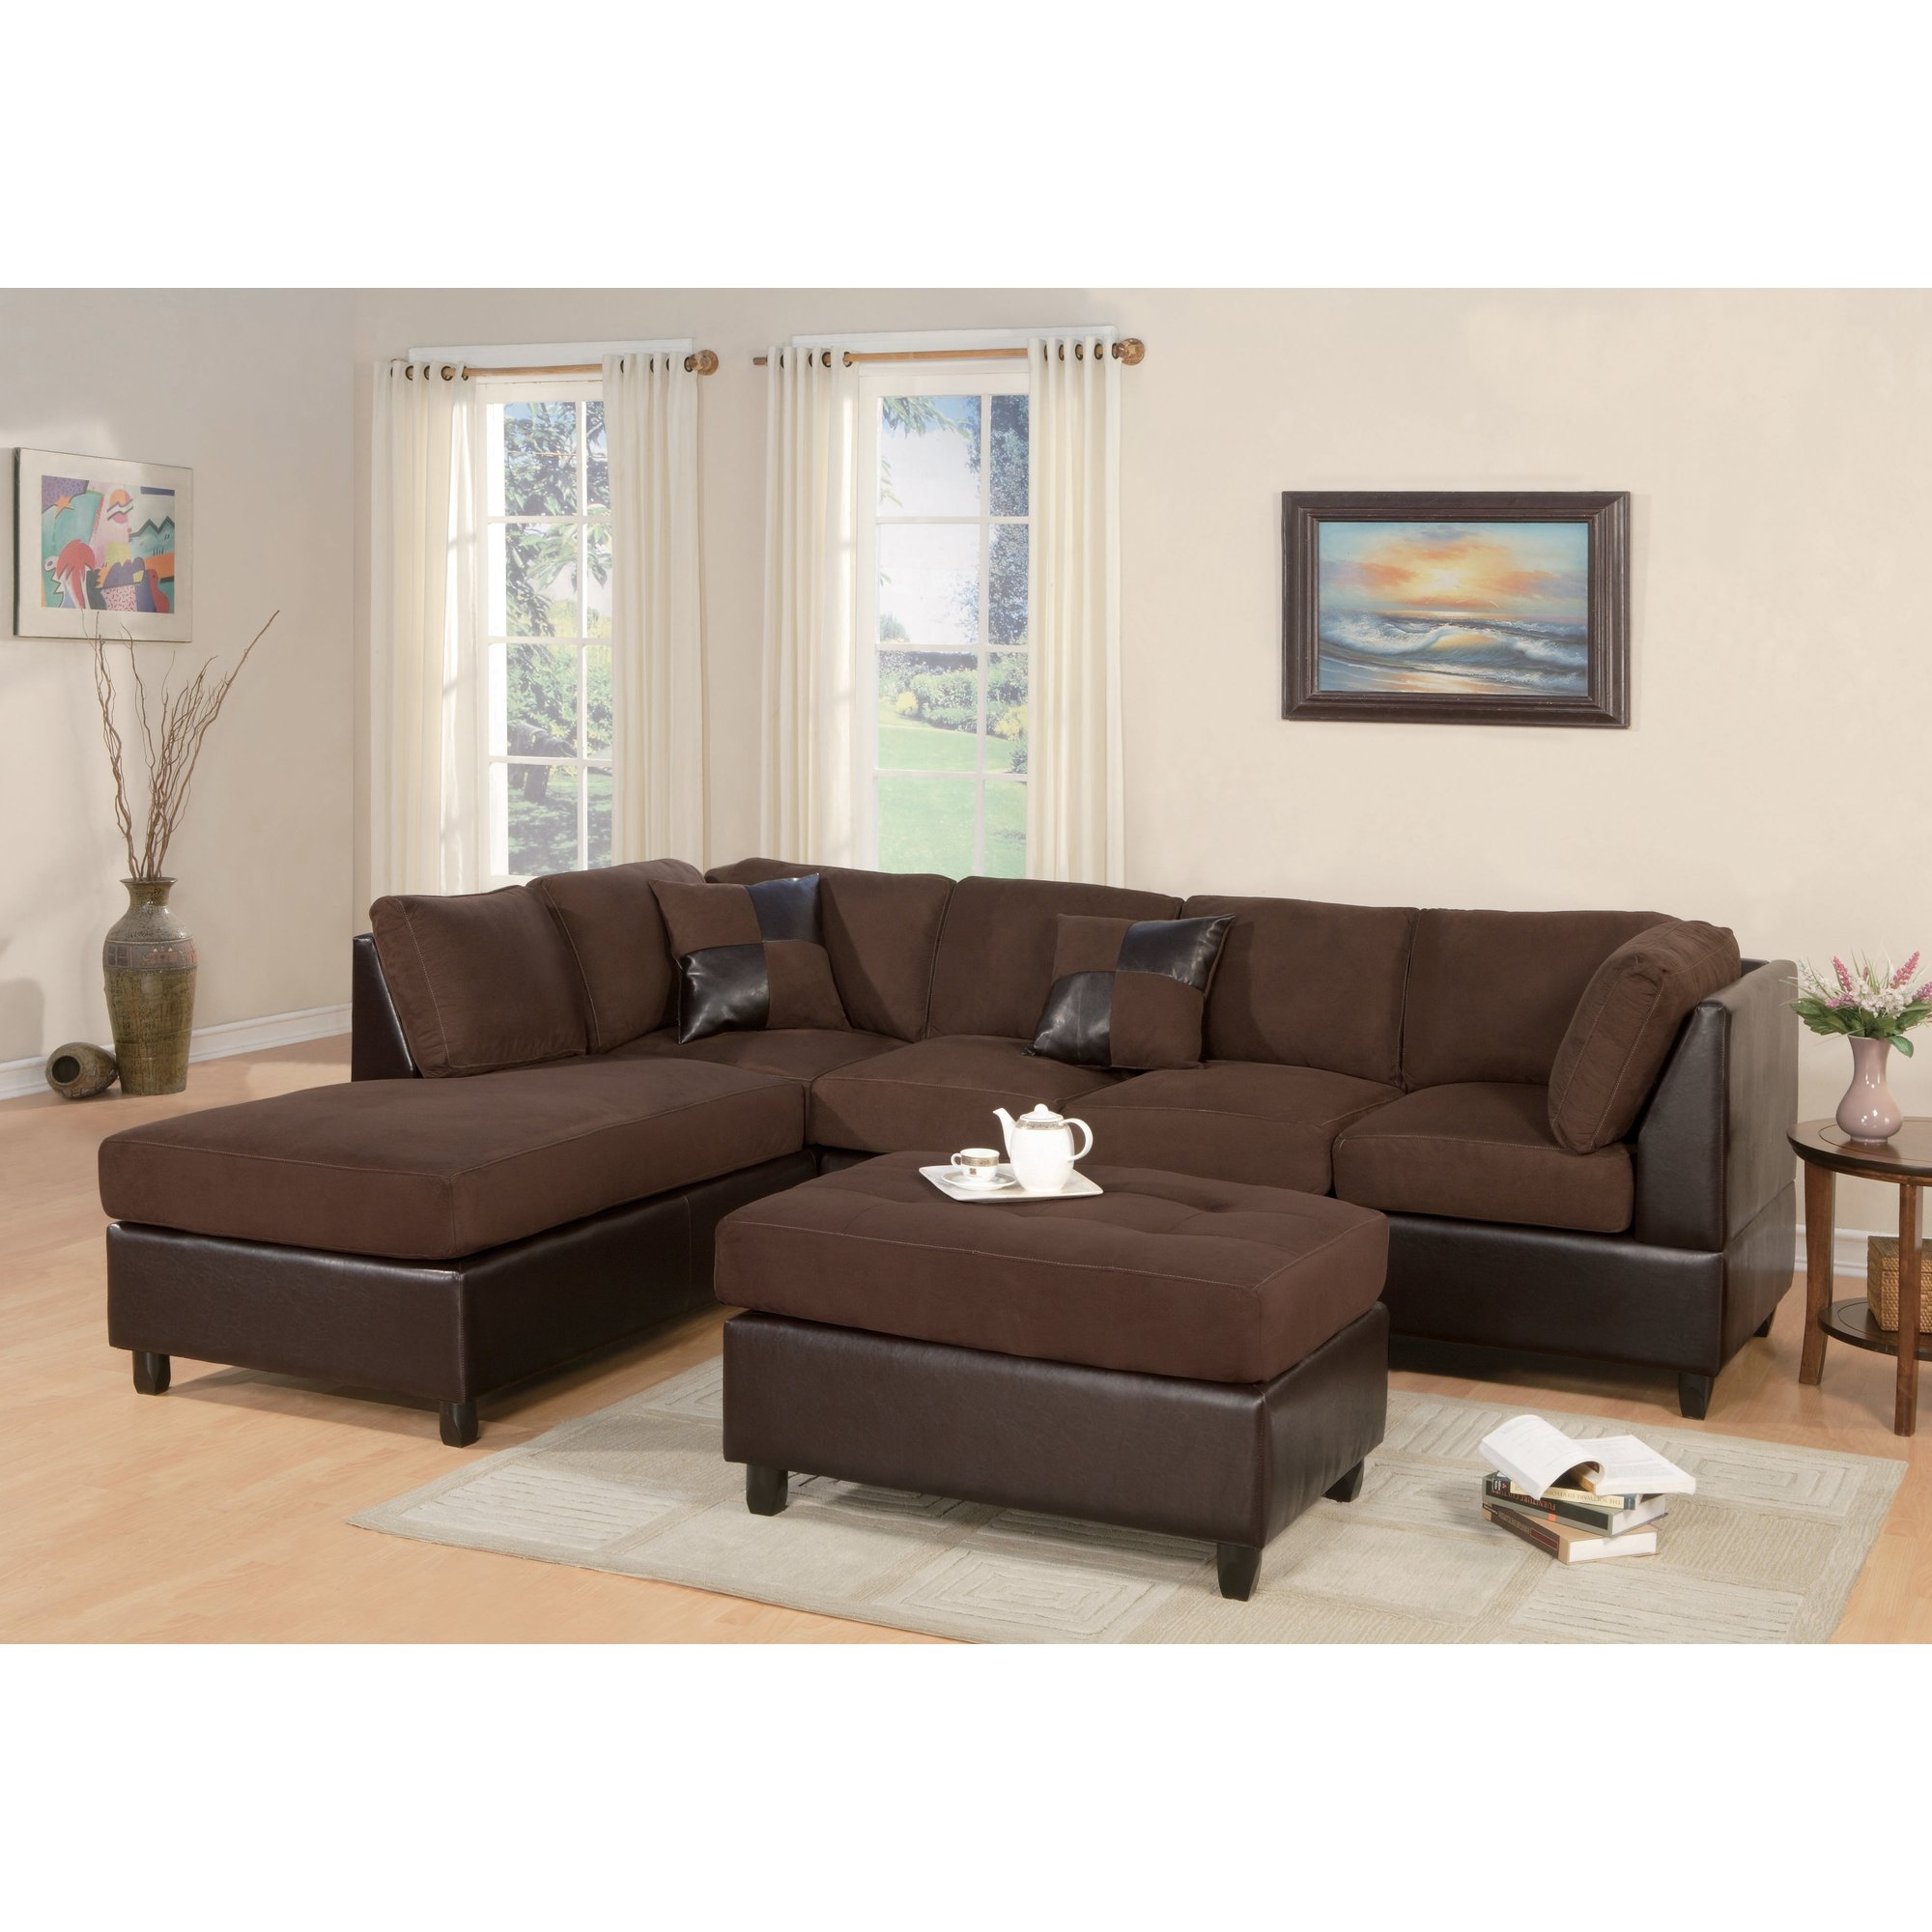 angled sectional sofa london club hom furniture 12 ideas of chaise